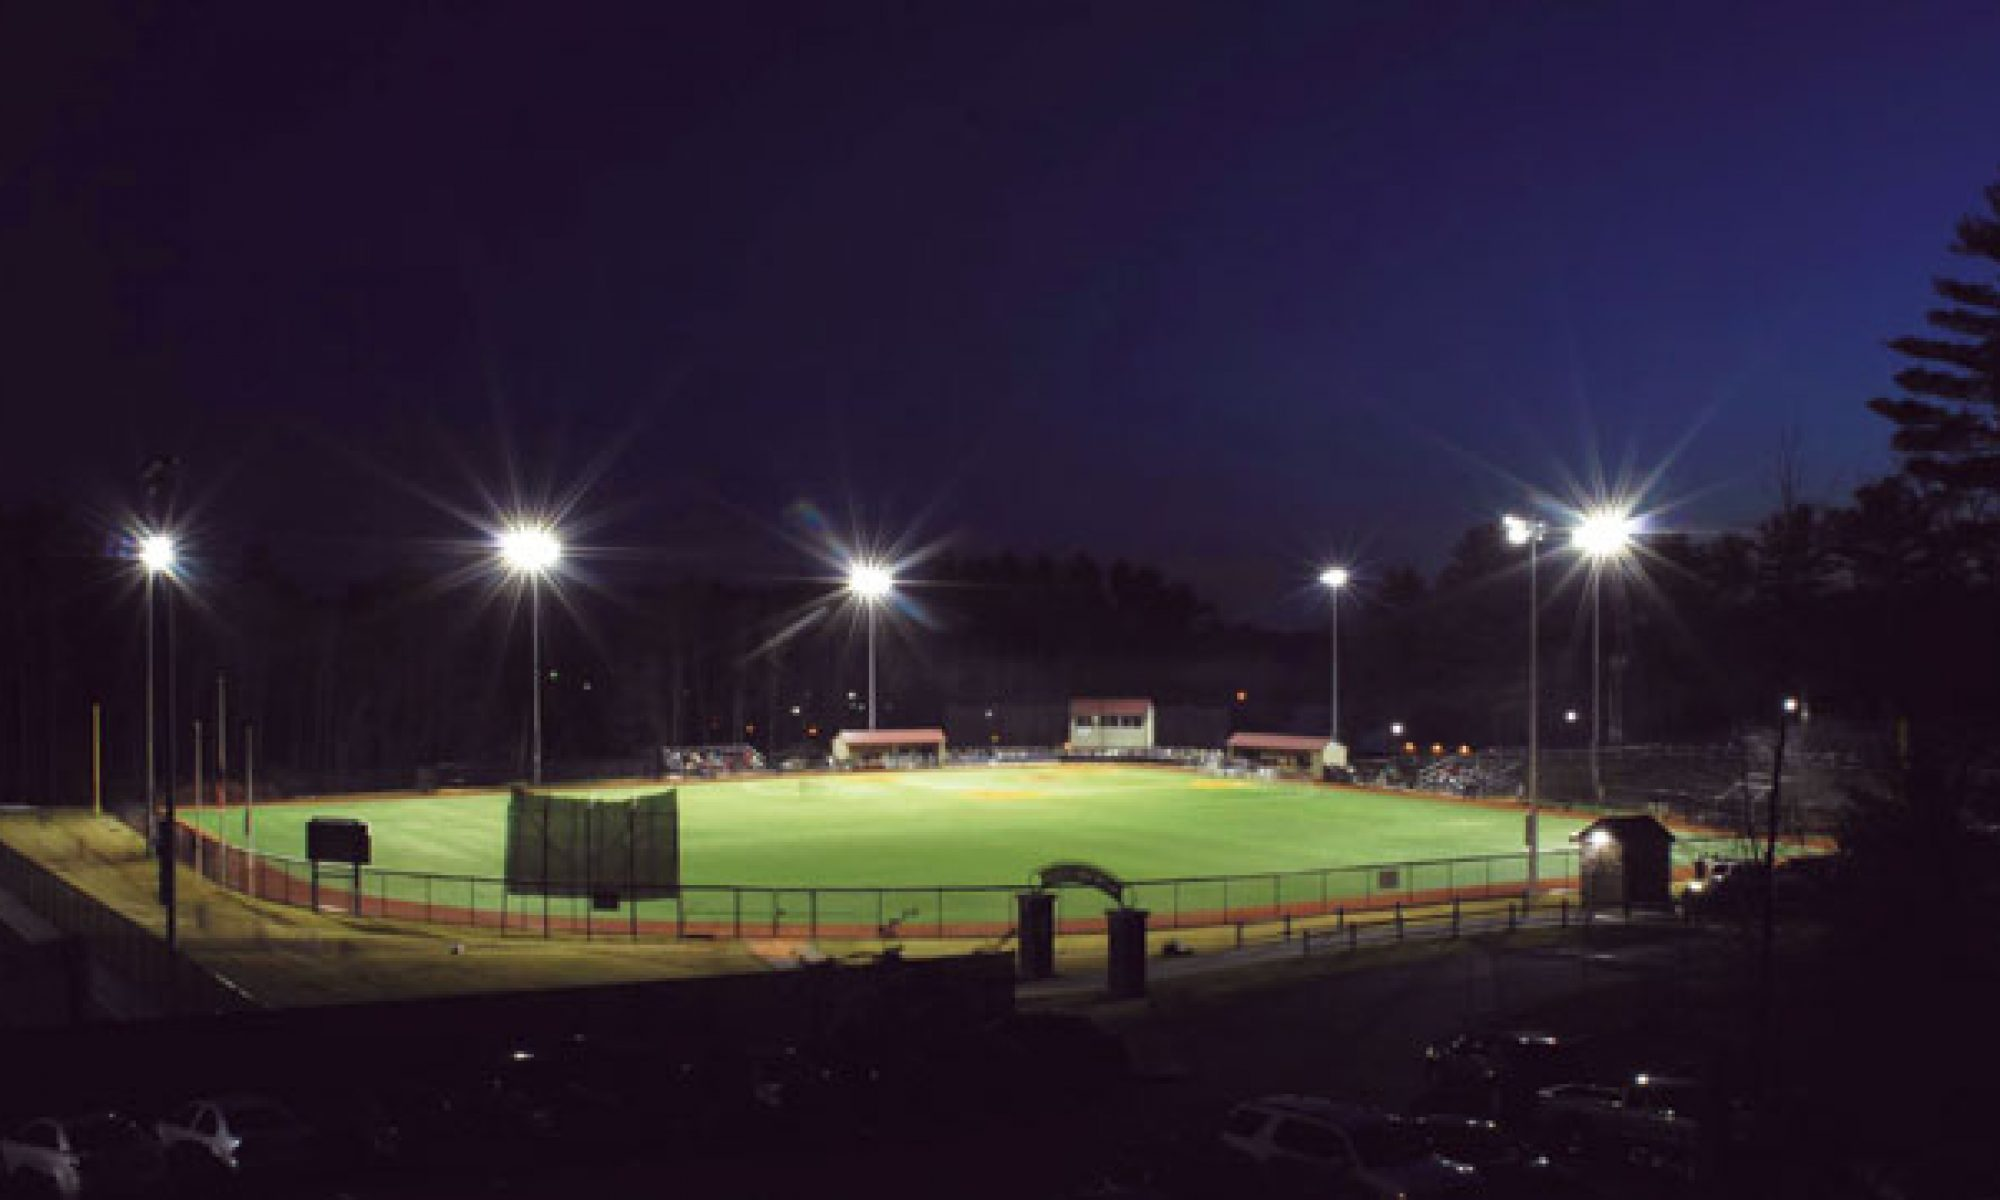 New England Ravens Baseball